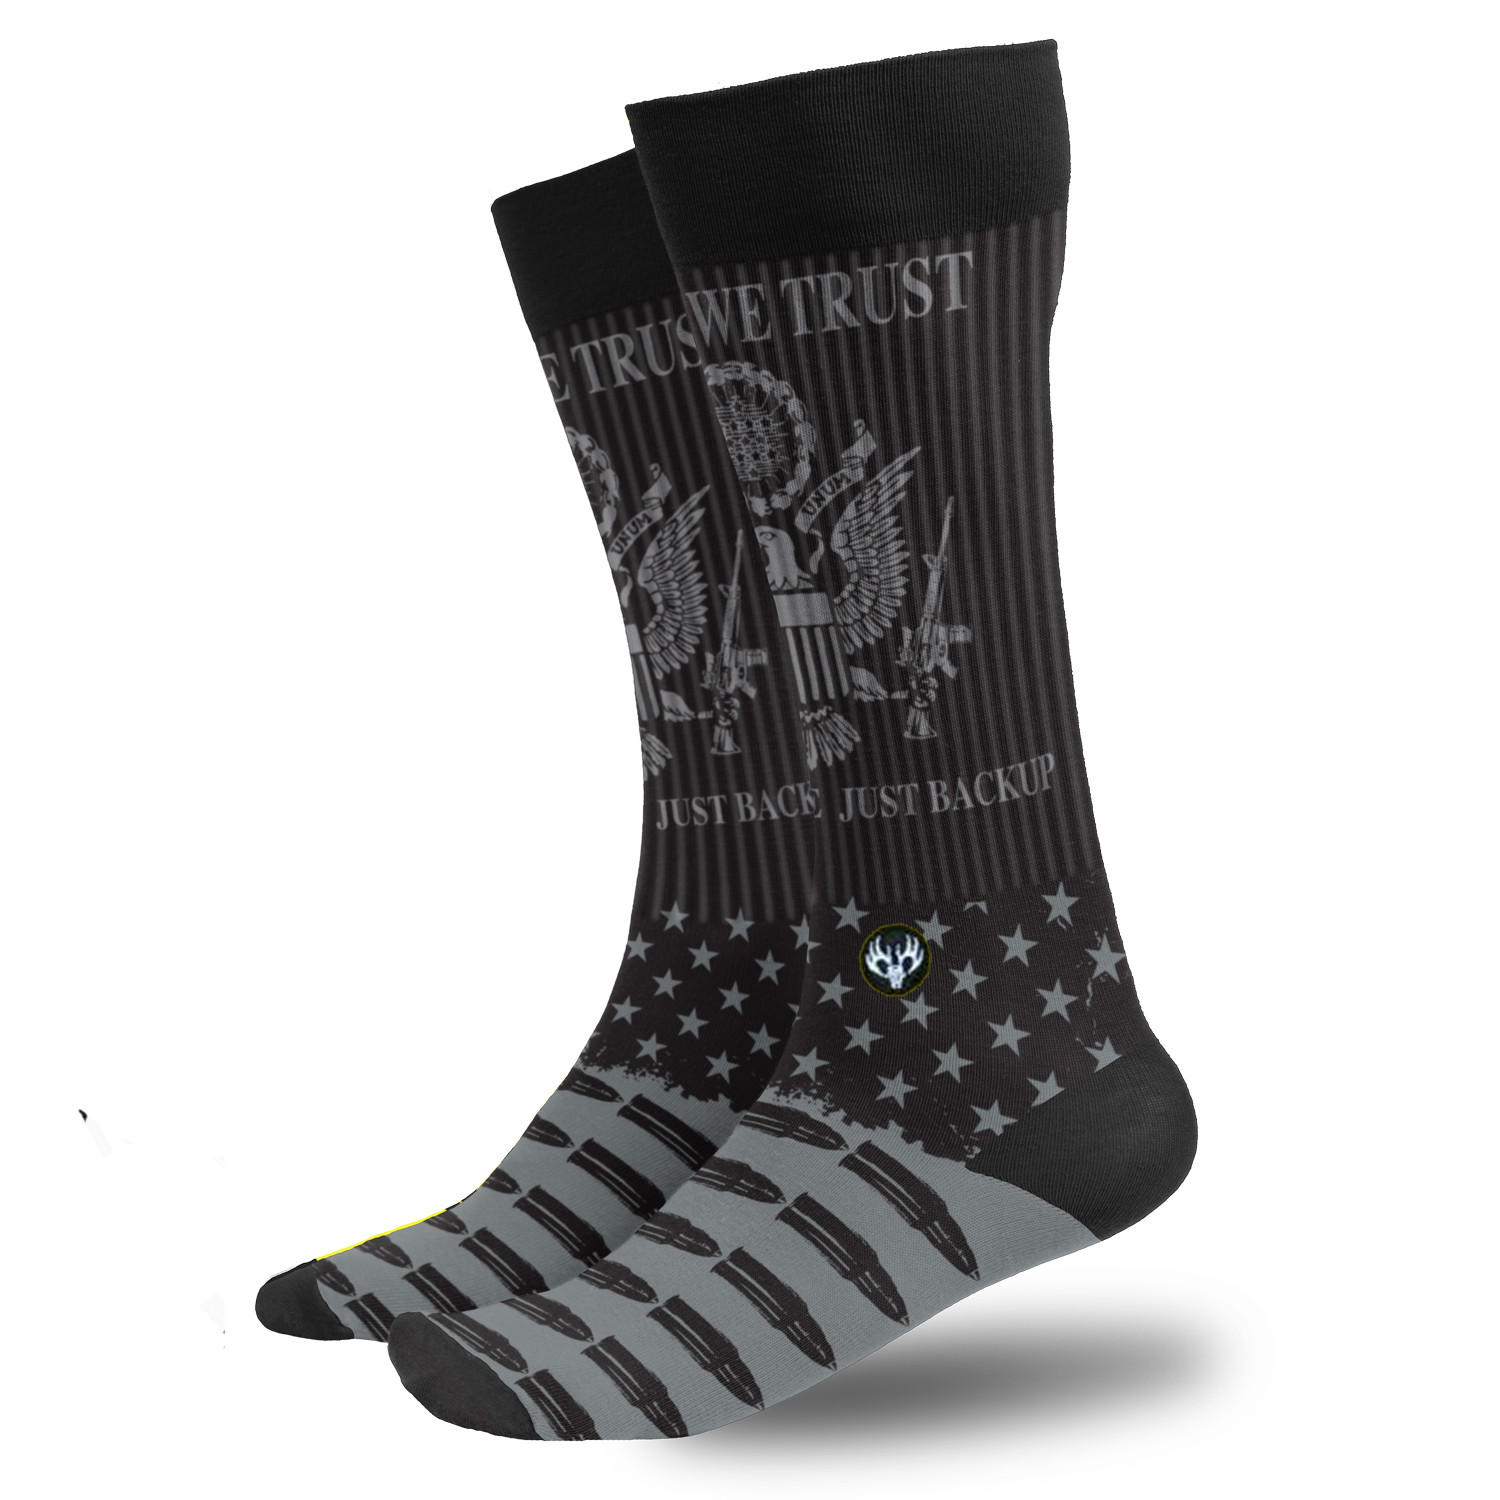 Front of Socks